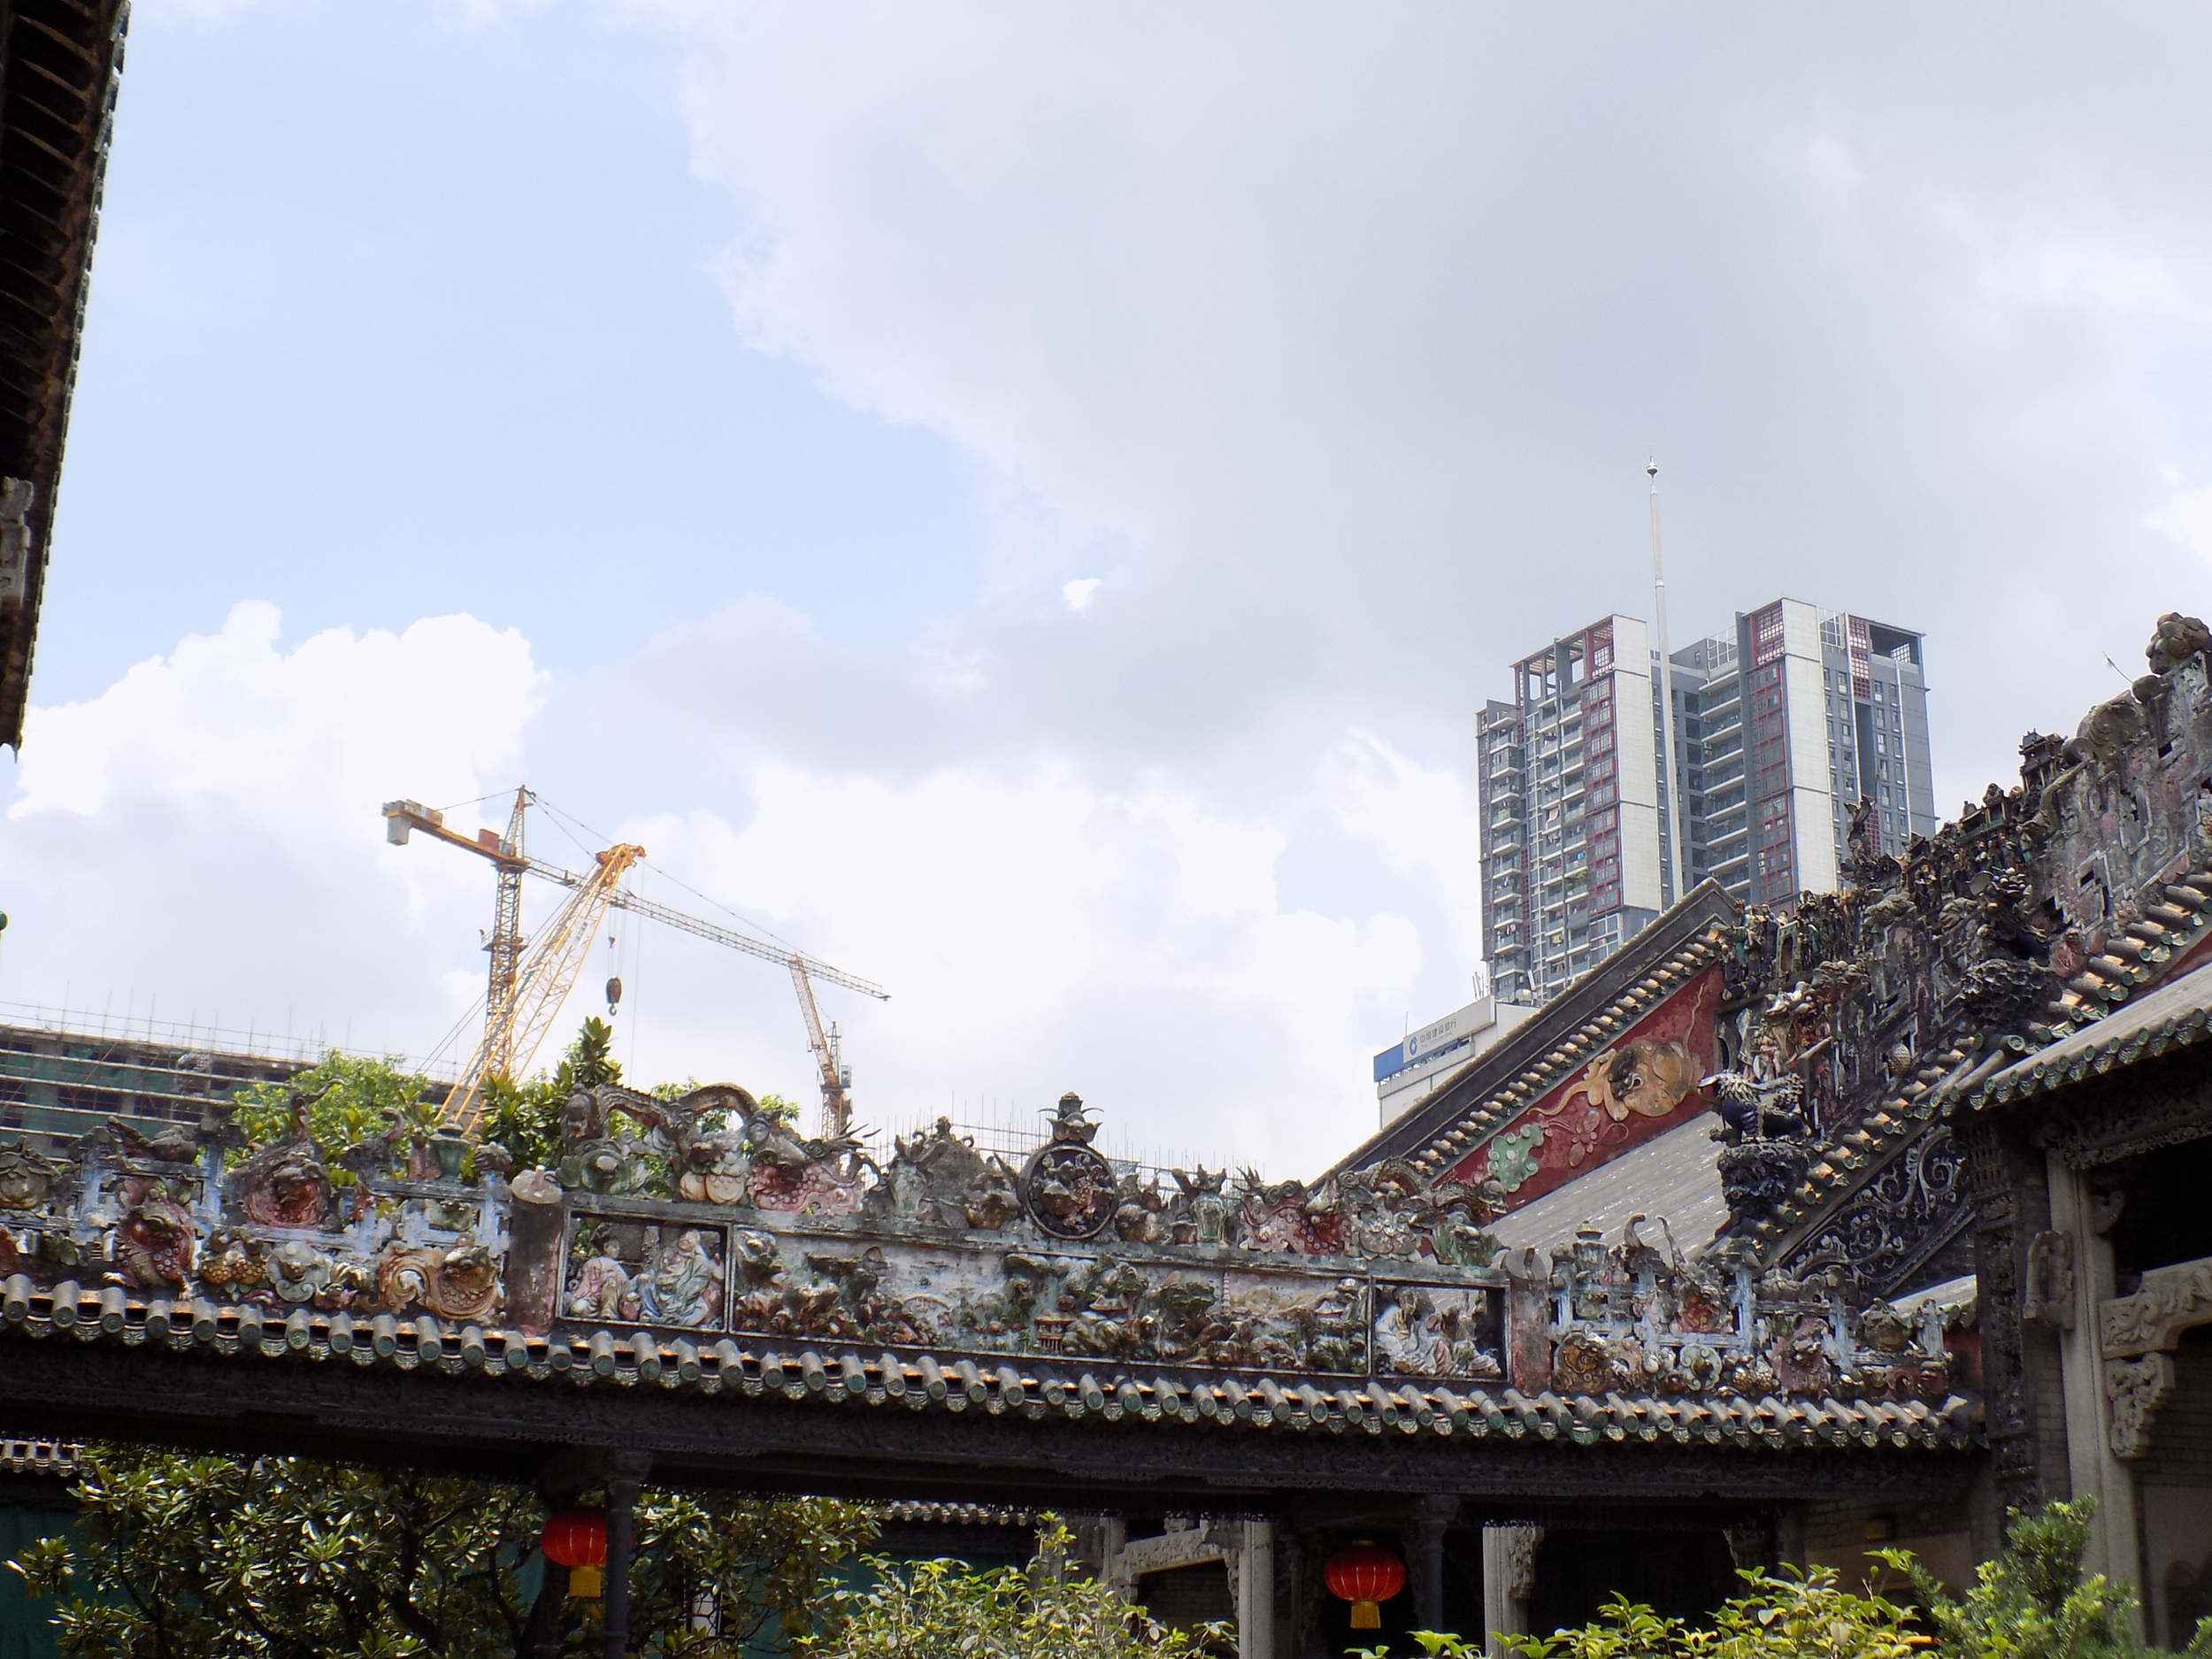 The Chen Clan Academy in Guangzhou,China - a mix of the past, present, and the future